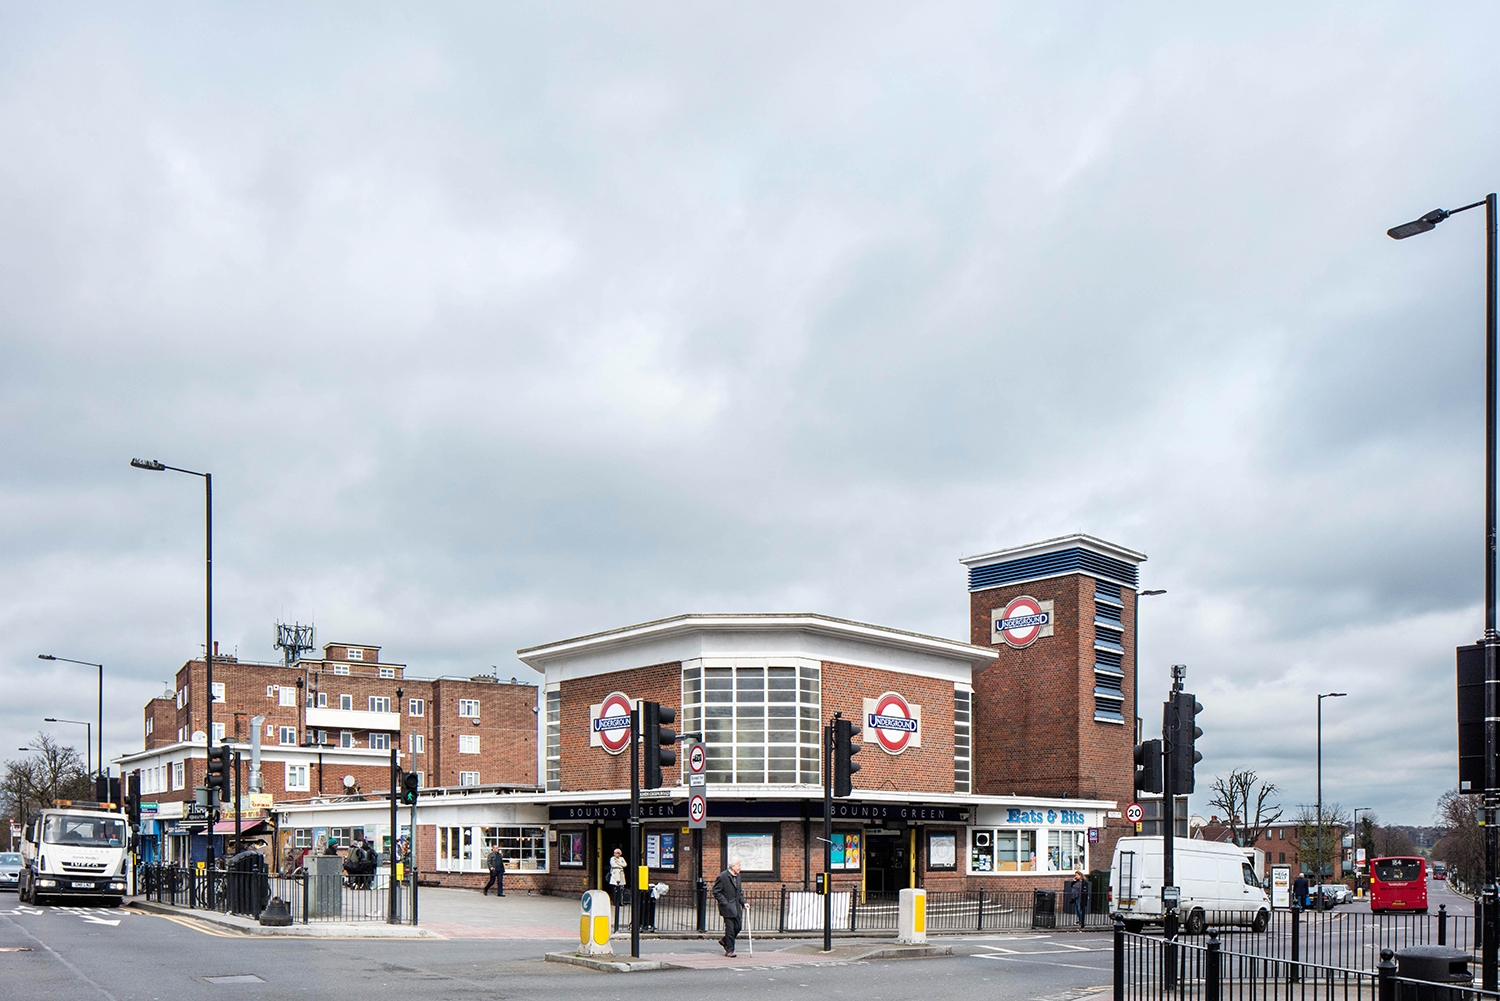 BOUNDS GREEN / PICCADILLY LINE / ARCHITECT: CHARLES HOLDEN